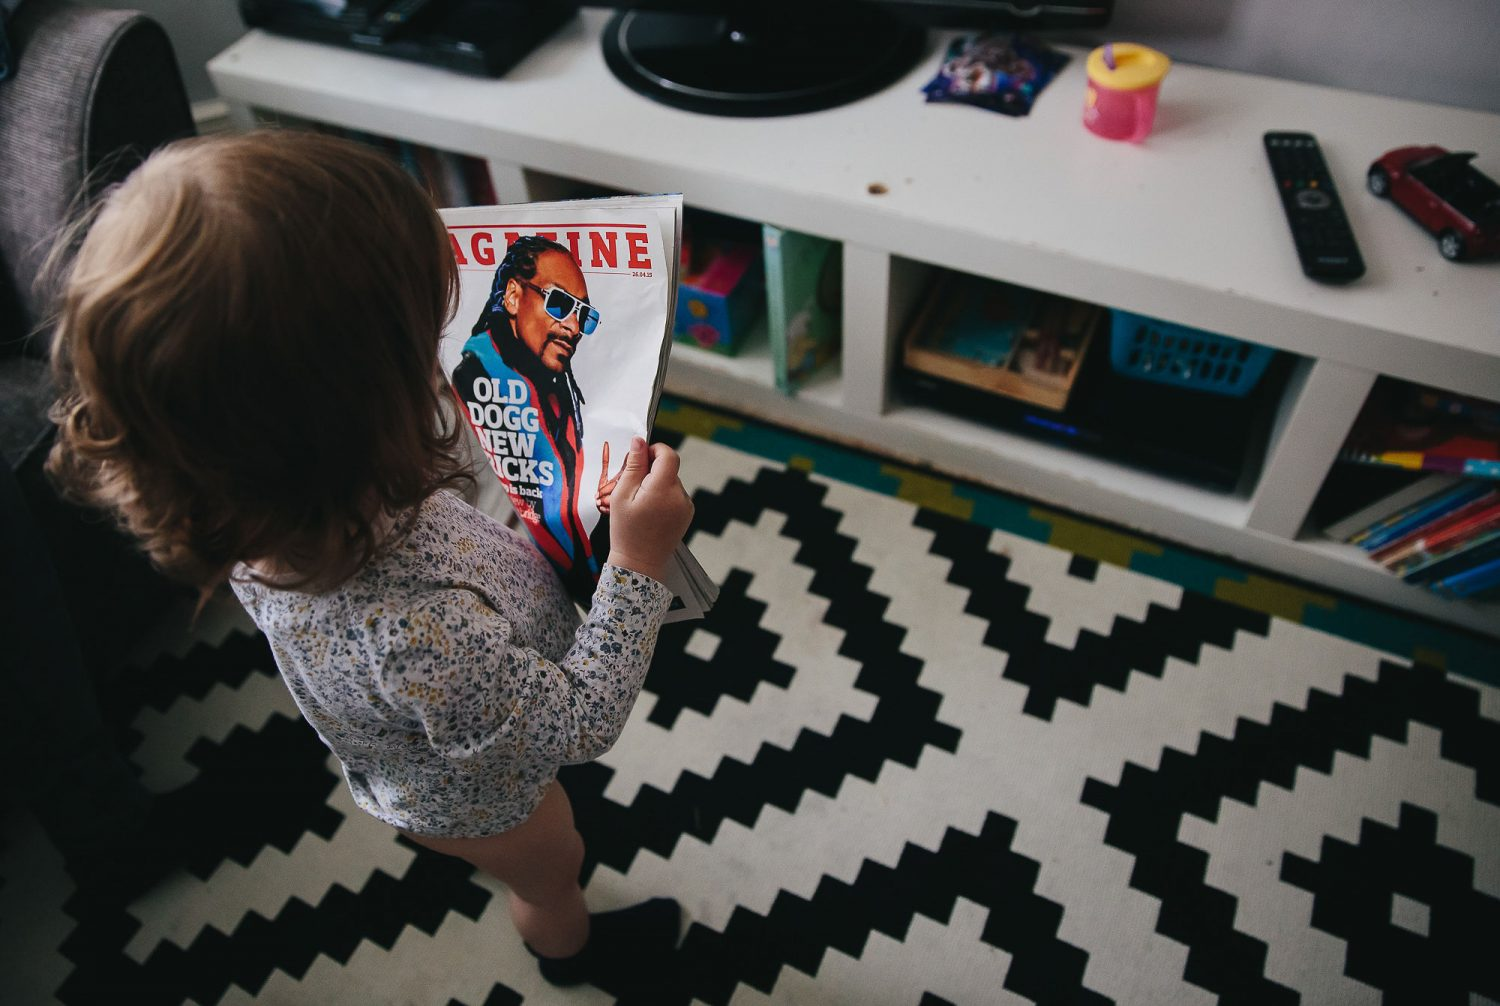 child reading a magazine with snoop dogg on the cover